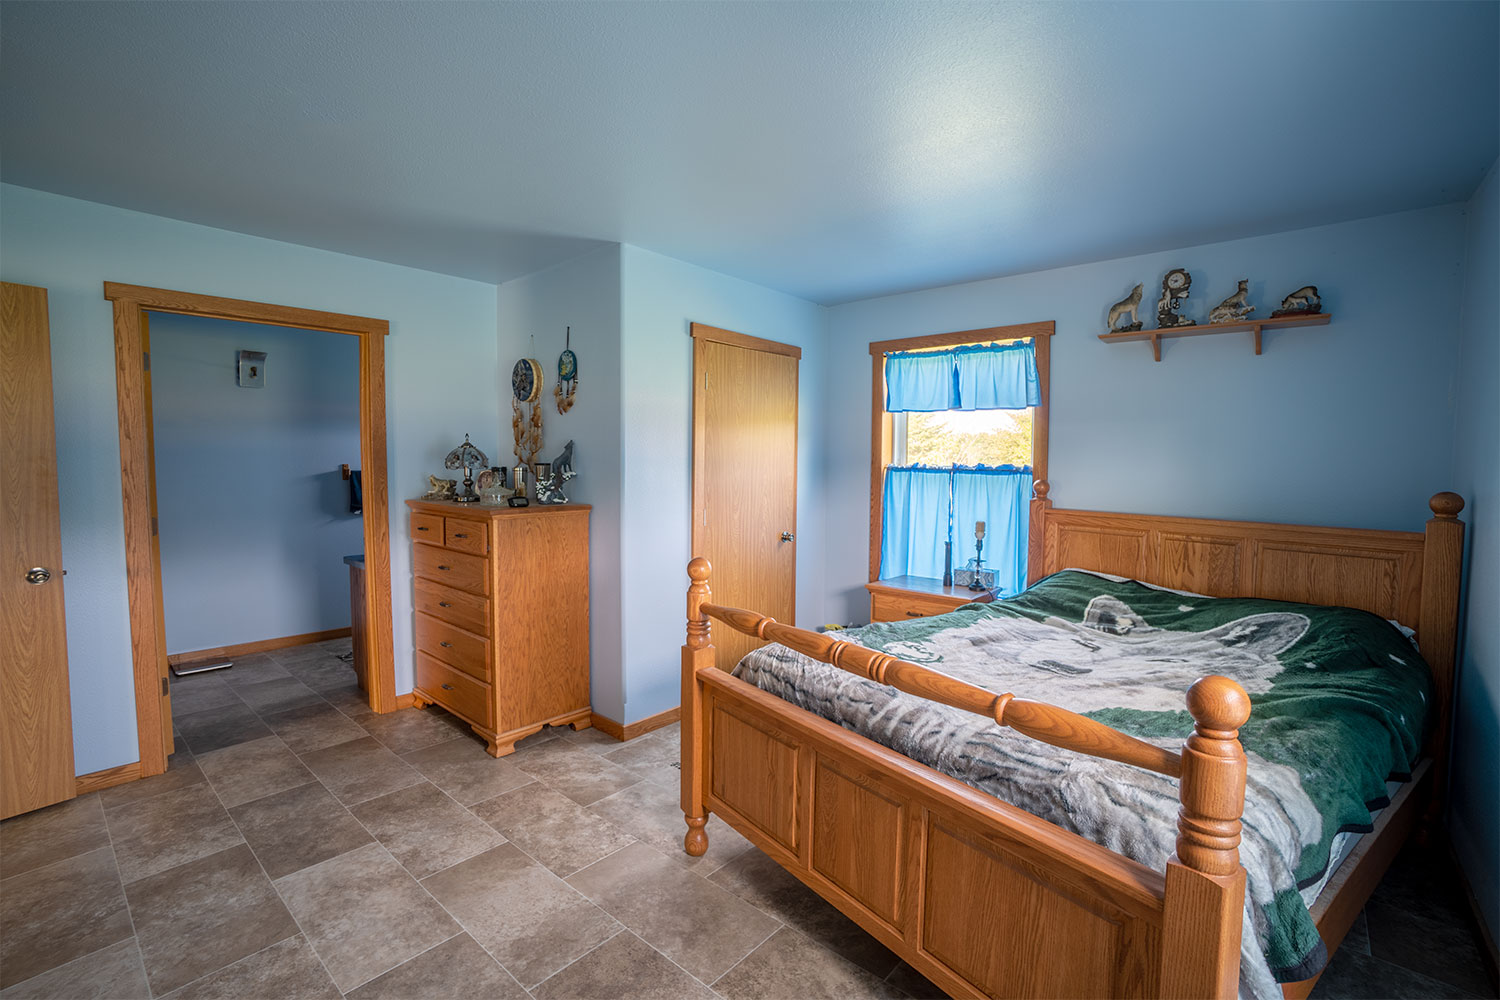 Real Estate Photography: Bedroom